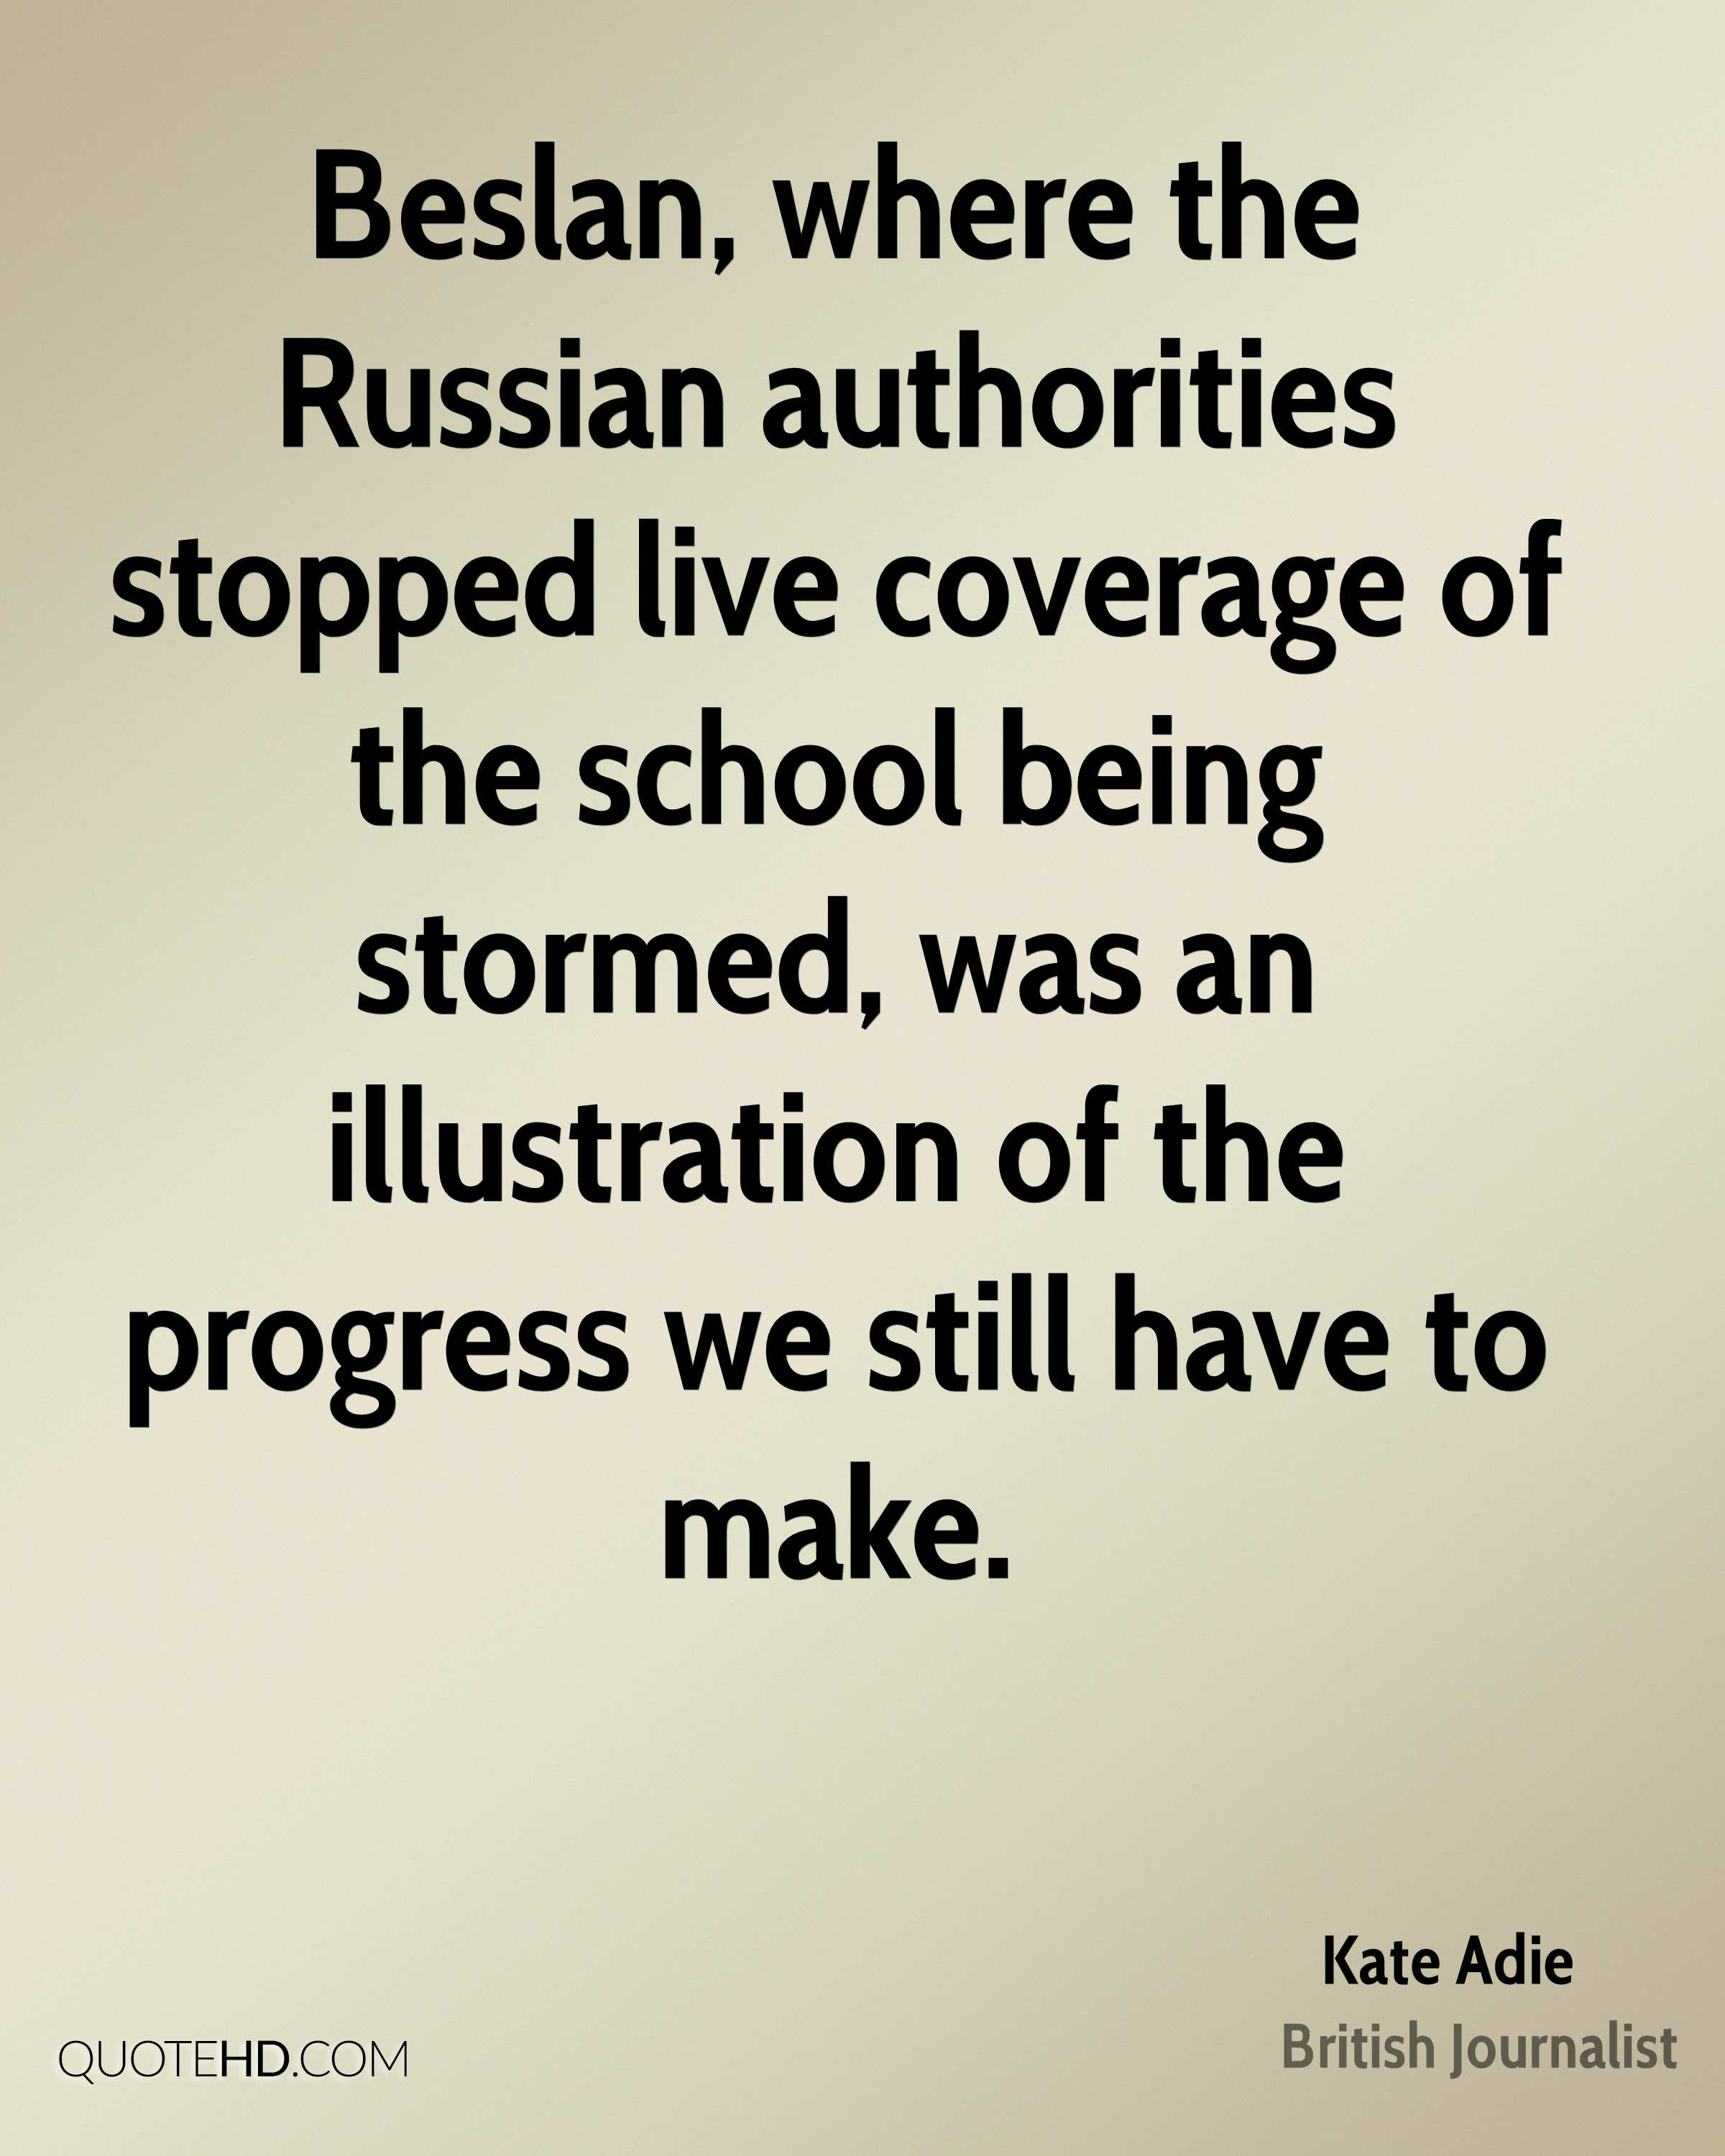 Beslan, where the Russian authorities stopped live coverage of the school being stormed, was an illustration of the progress we still have to make.